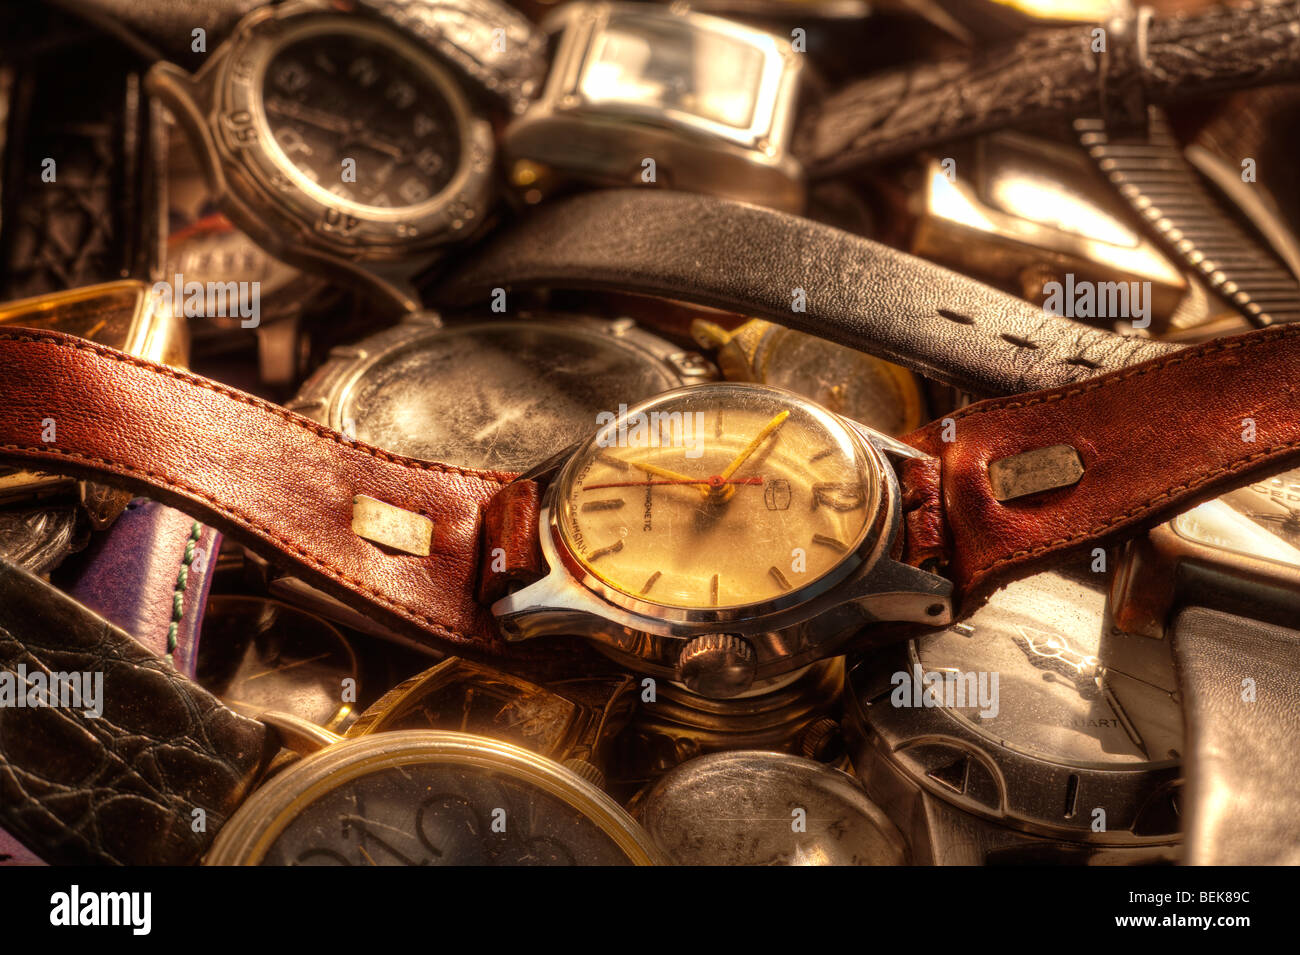 Old watchesStock Photo